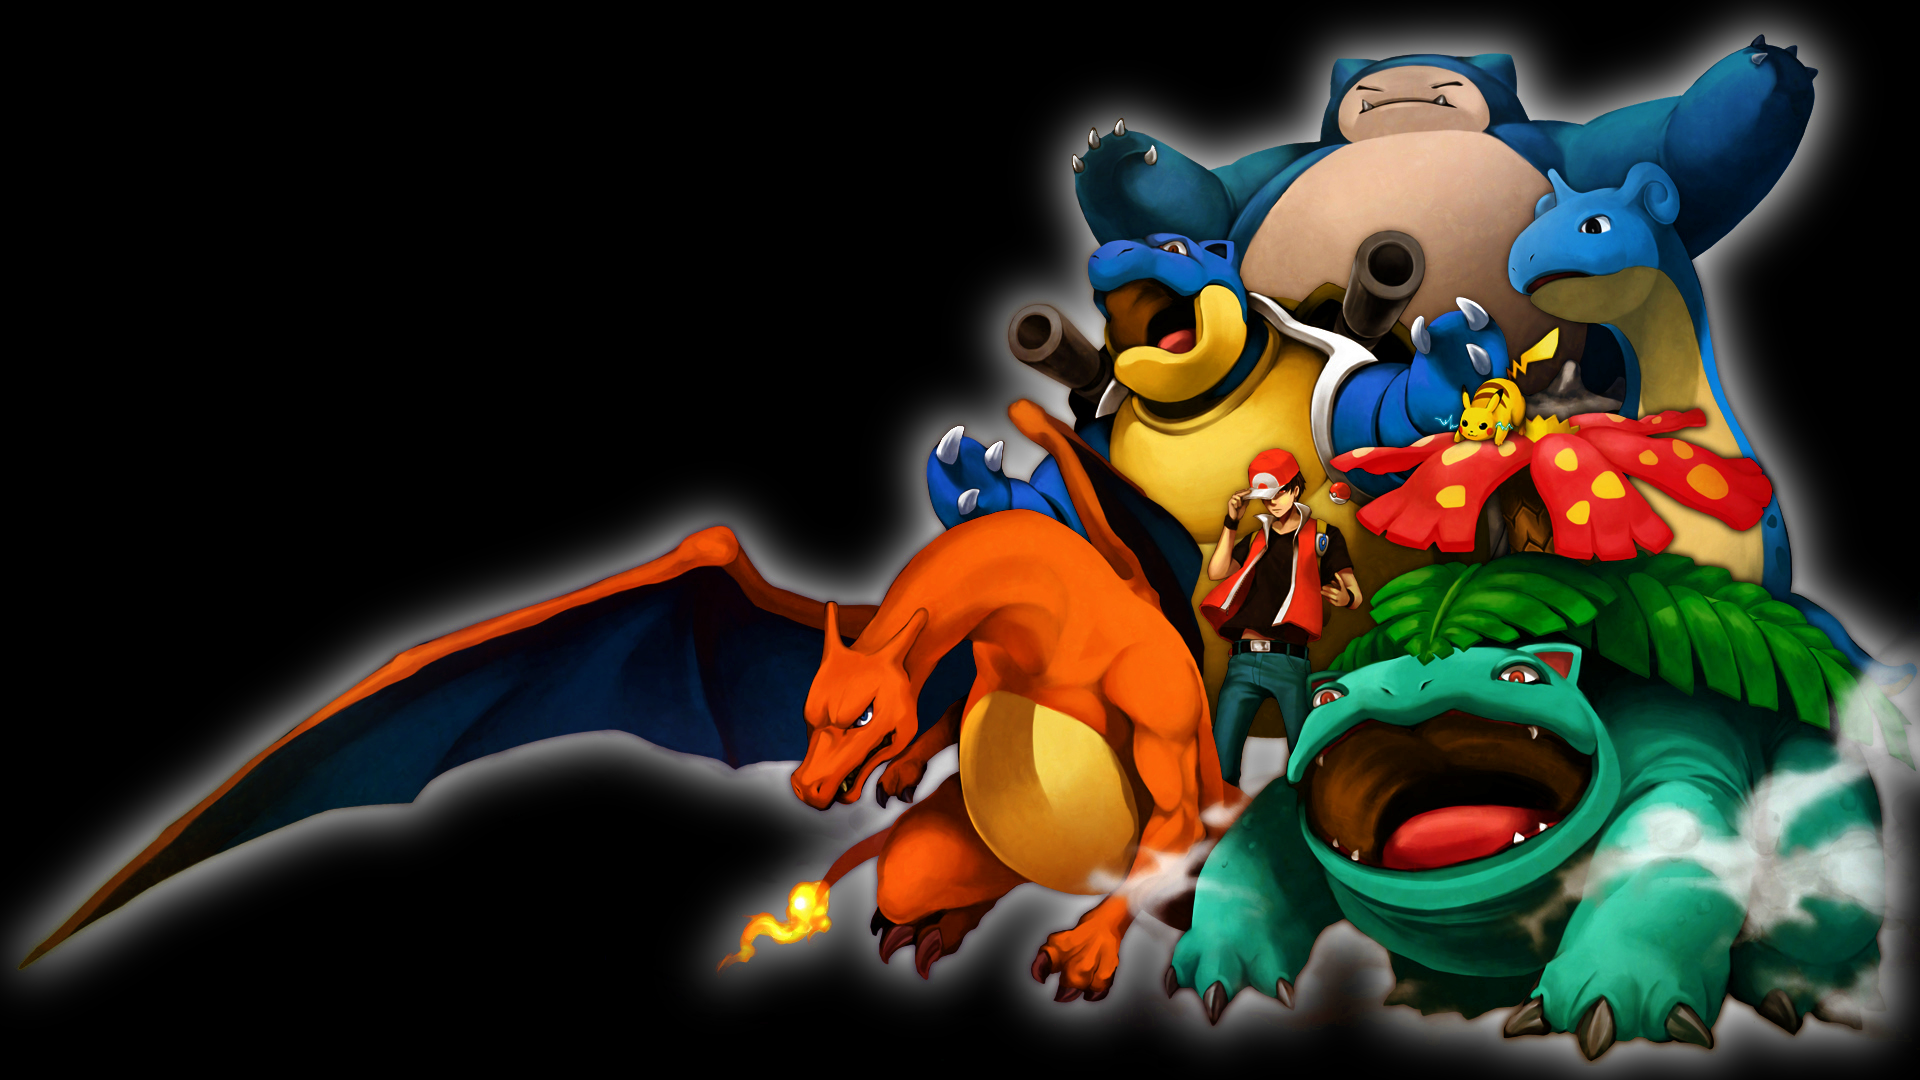 Anime Pokemon Wallpaper 1920x1080 ImageBankbiz 1920x1080